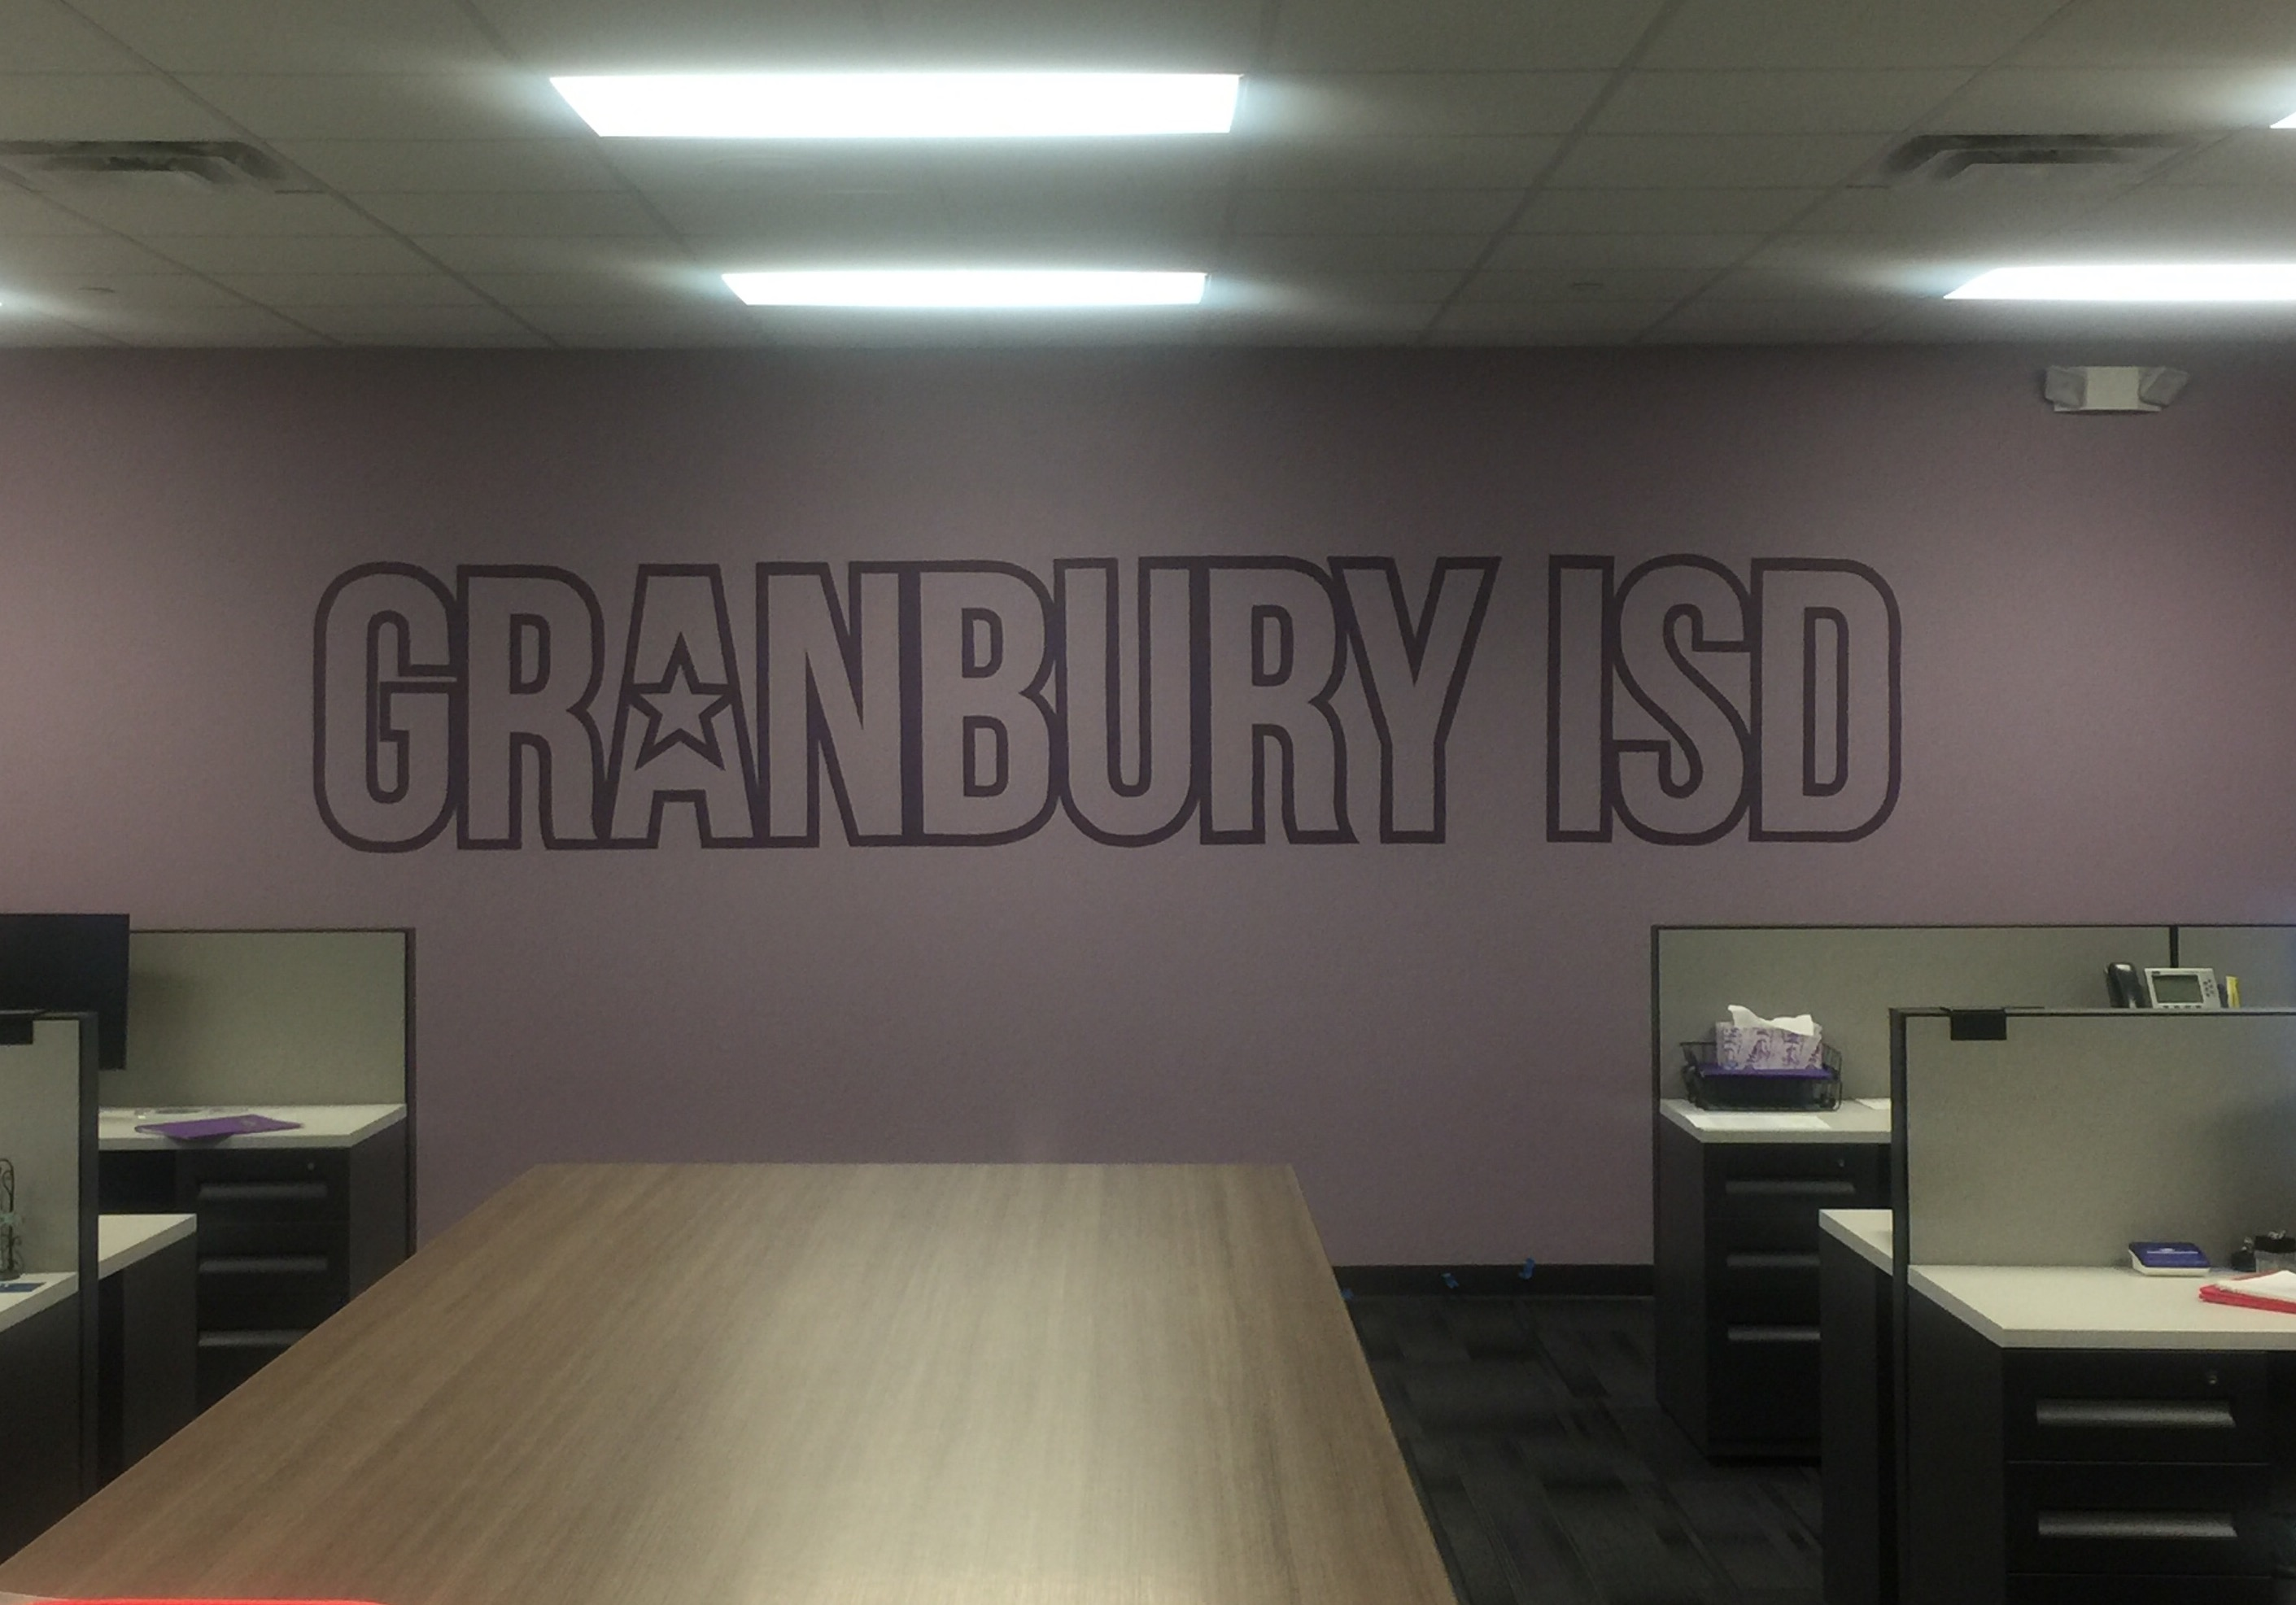 Granbury Hand Painted Murals